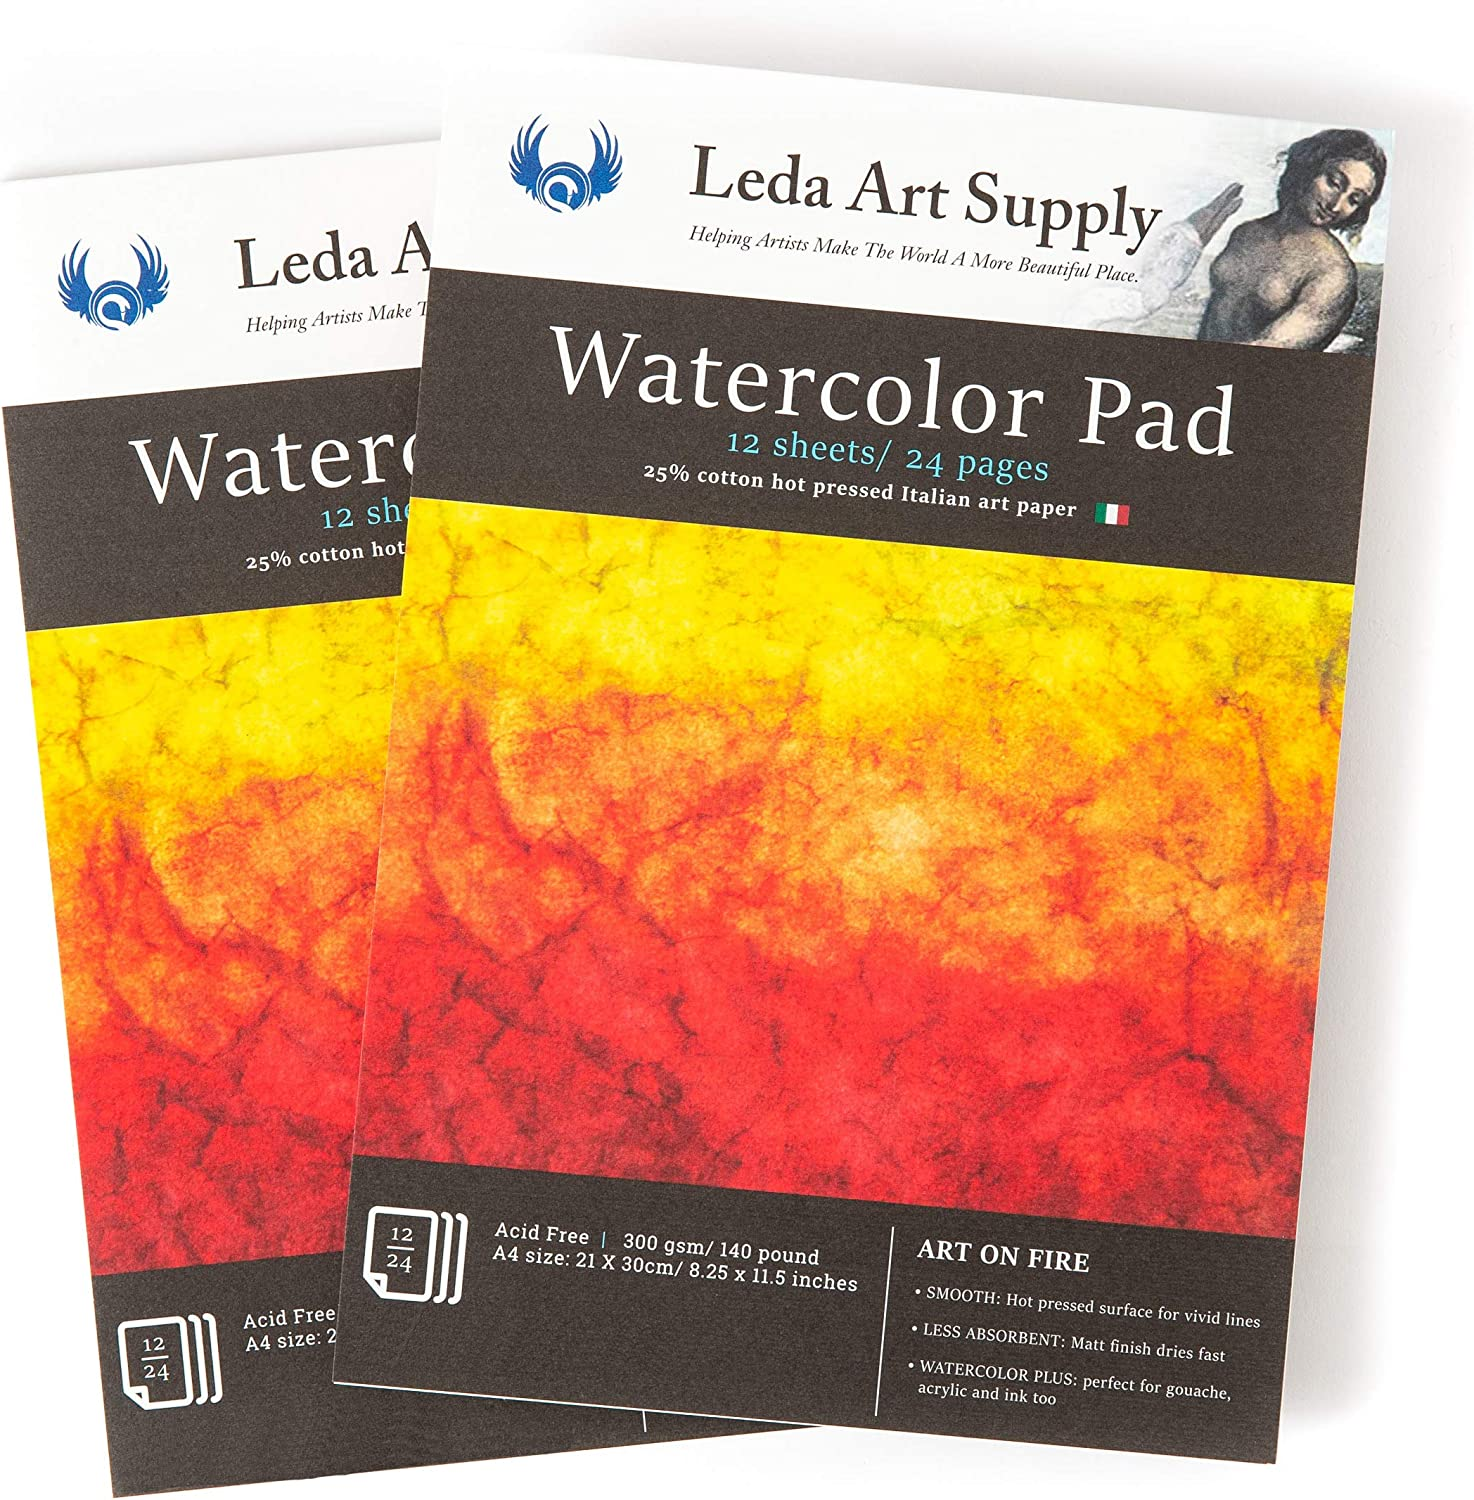 Leda Art Supply Hot Pressed Watercolor Pack Popular popular 2 Tota Pages 48 Reservation Pad